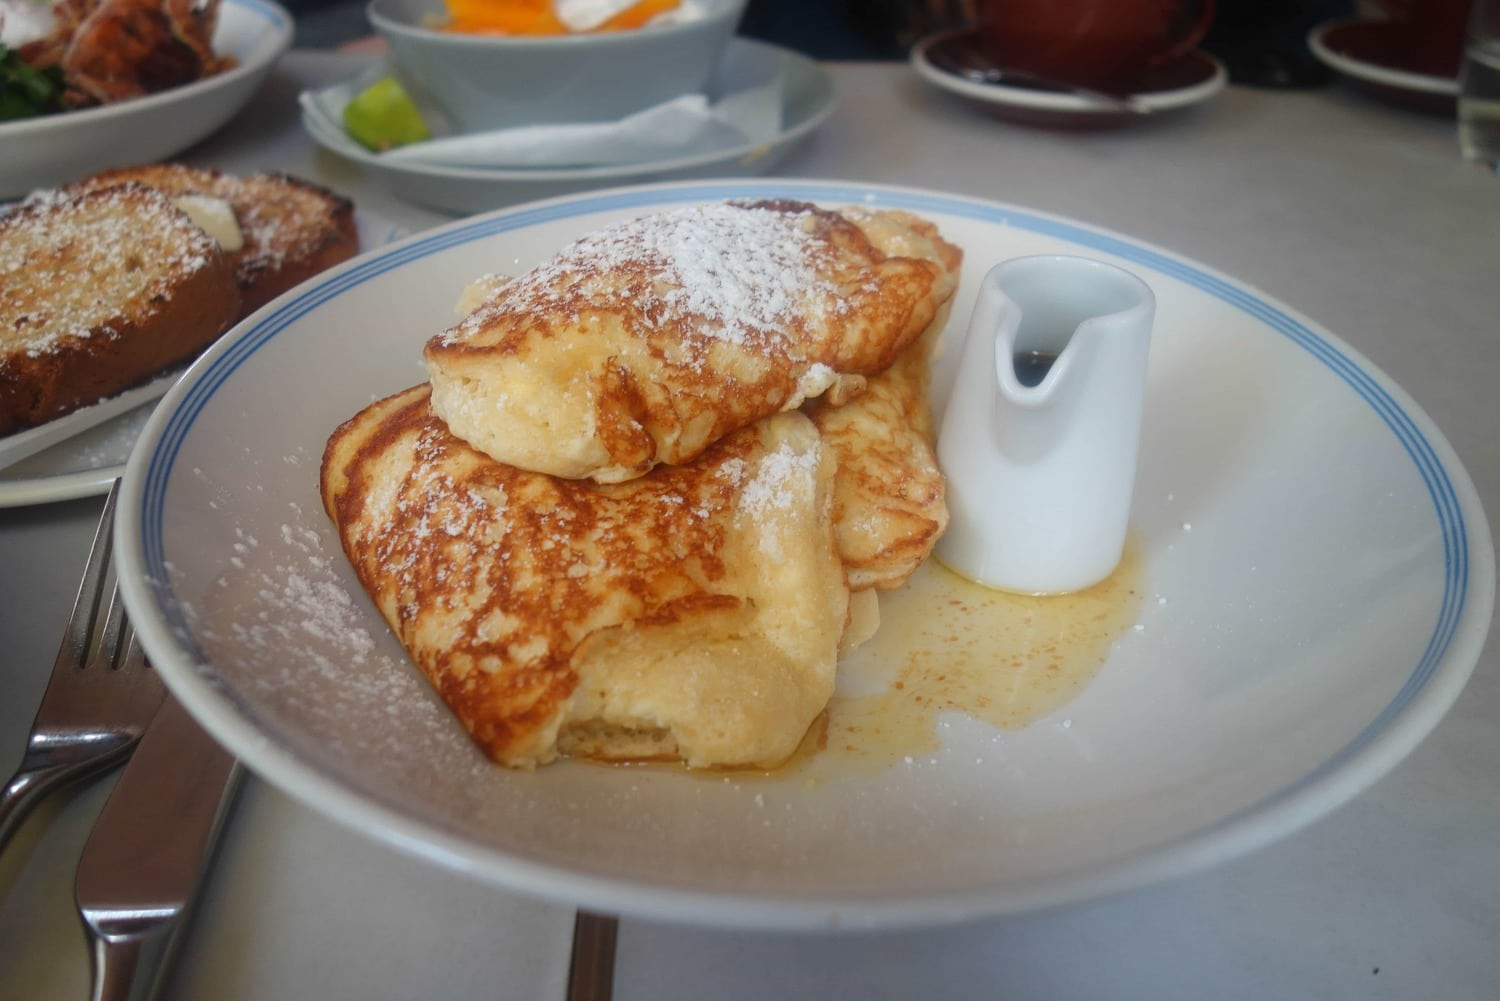 Ricotta Hotcakes, Granger & Co - Where To Eat London's Most Delicious Pancakes